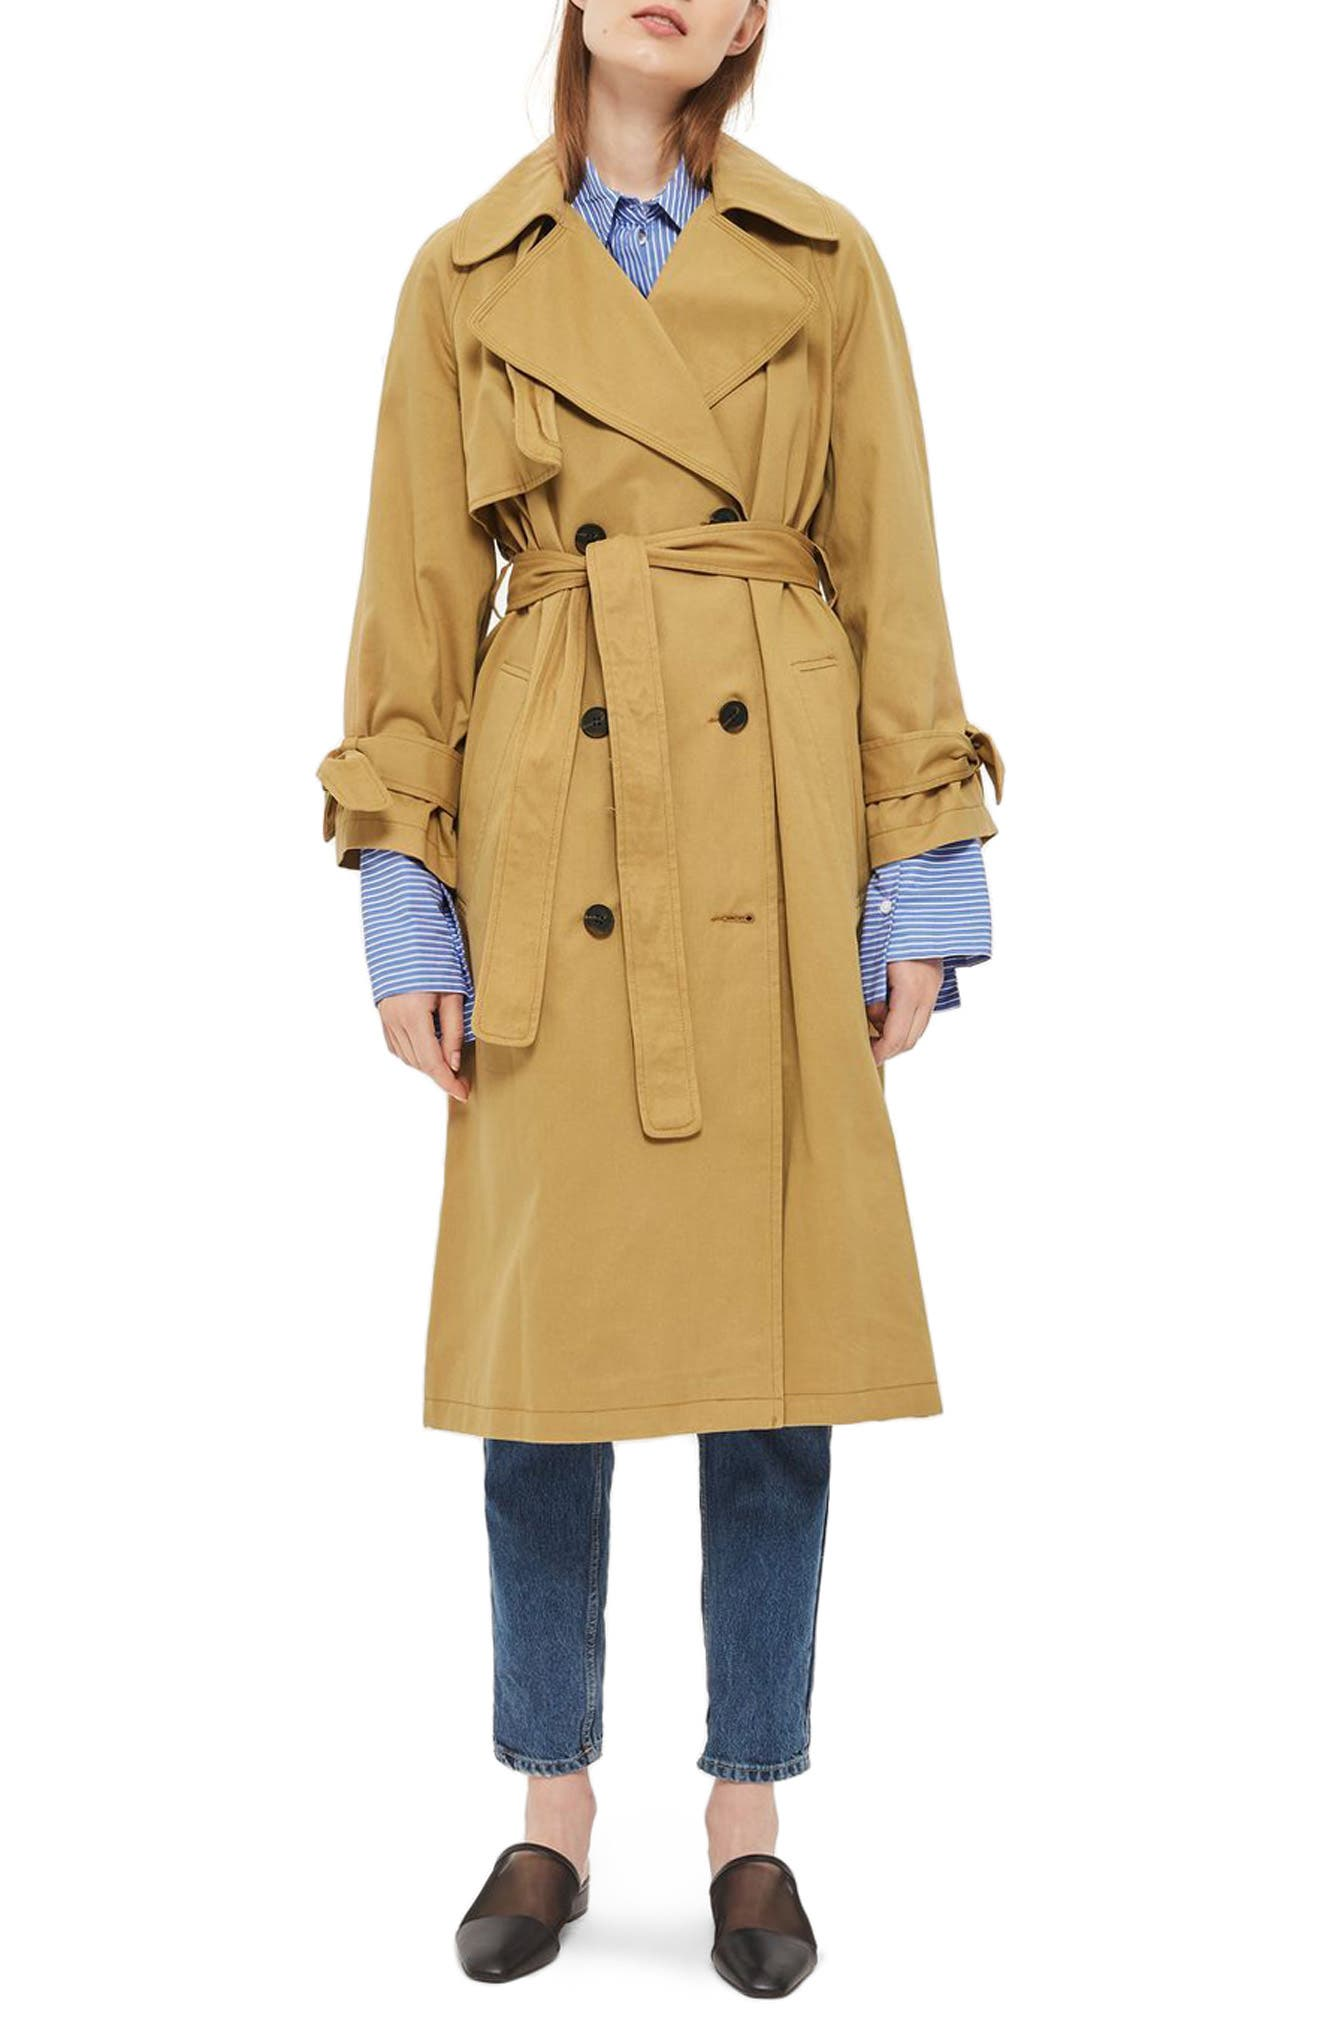 TOPSHOP, Editor's Double Breasted Trench Coat, Main thumbnail 1, color, 200